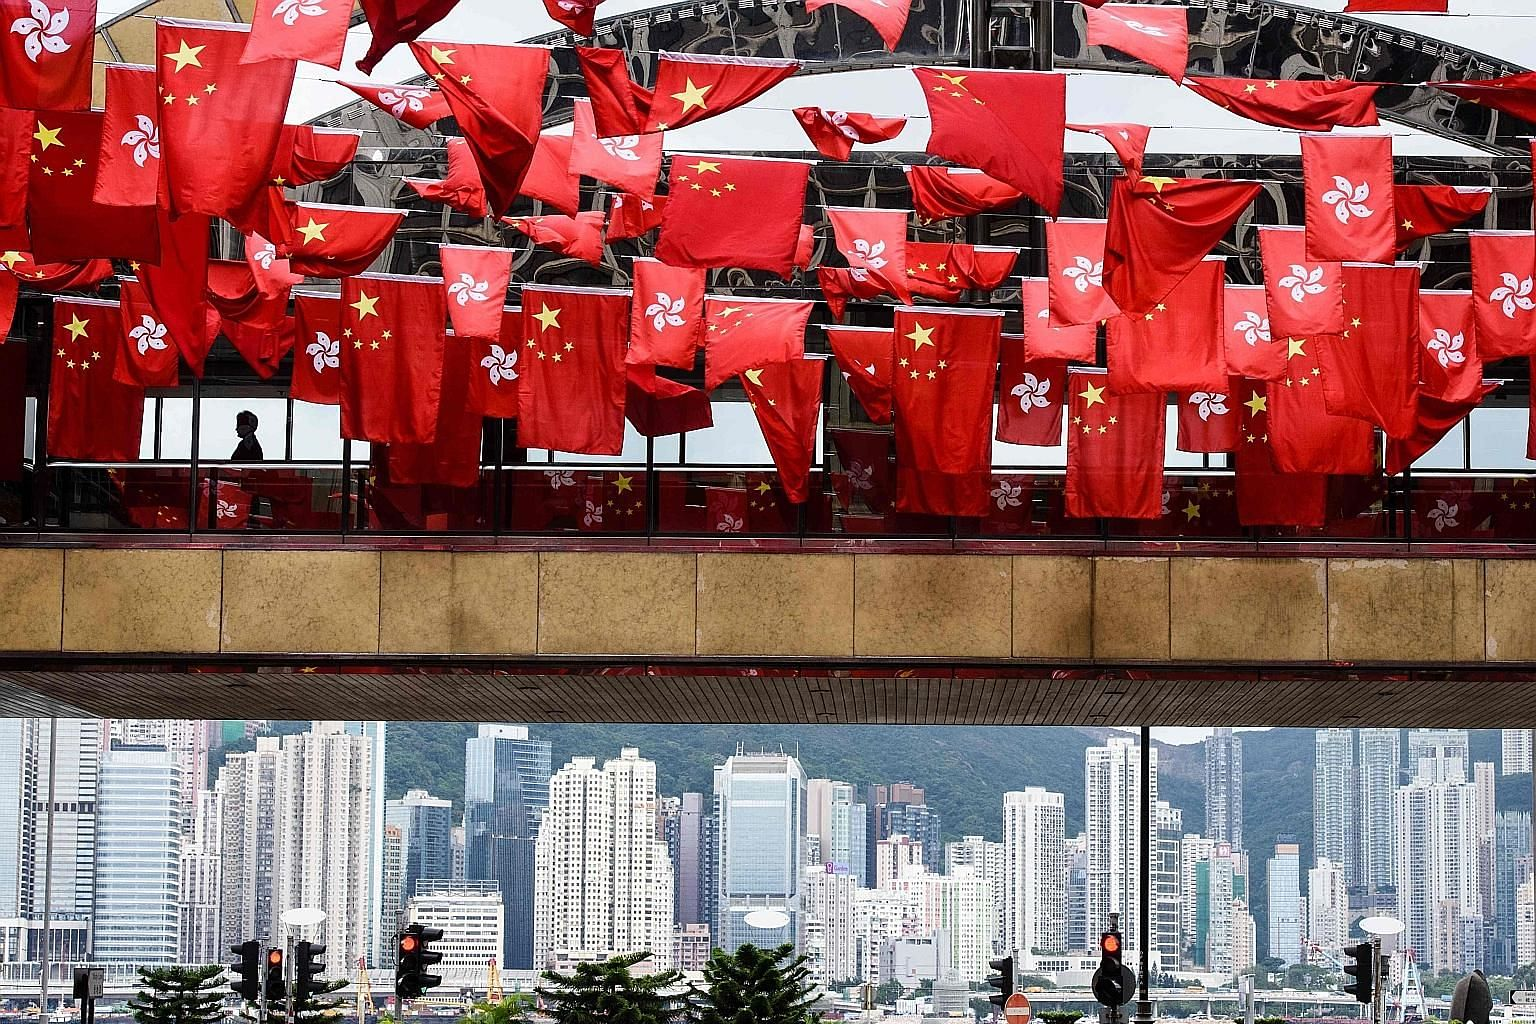 Hong Kong and China flags adorning buildings across the city to mark the 20th anniversary of its handover to China by Britain. In 30 years' time, Hong Kong will fully revert to the mainland.